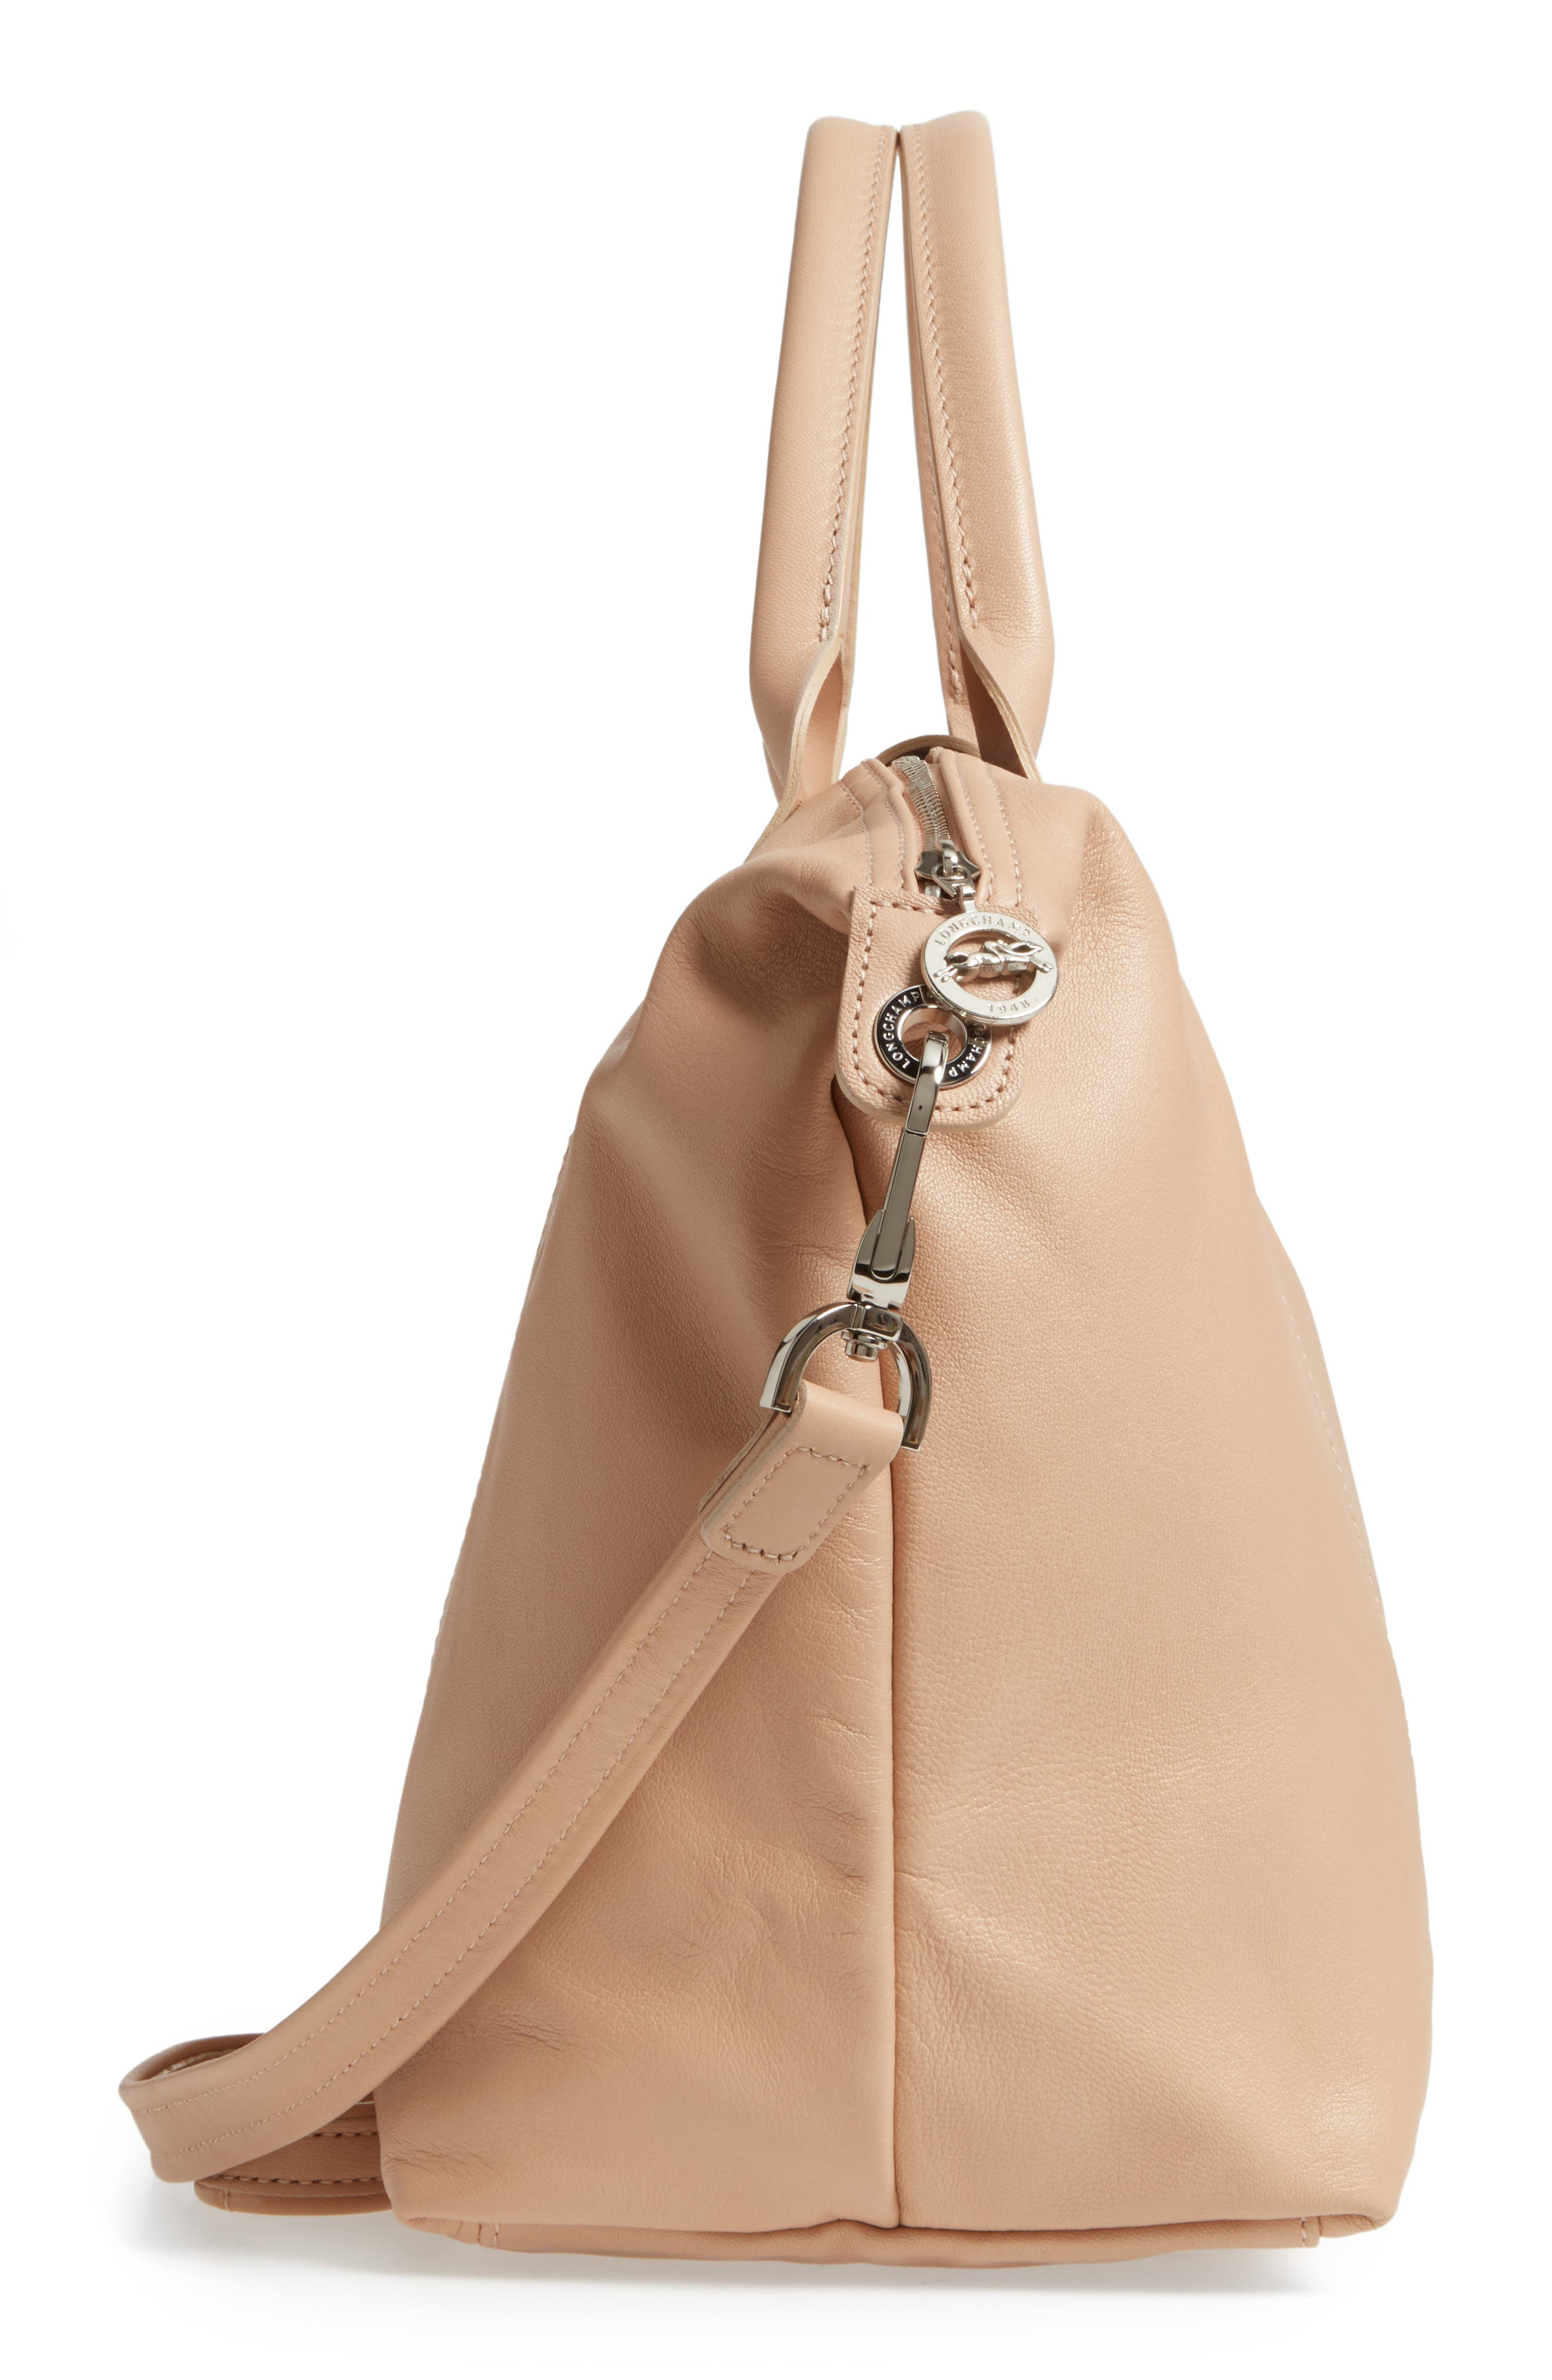 Medium 'Le Pliage Cuir' Leather Top Handle Tote,                             Alternate thumbnail 89, color,